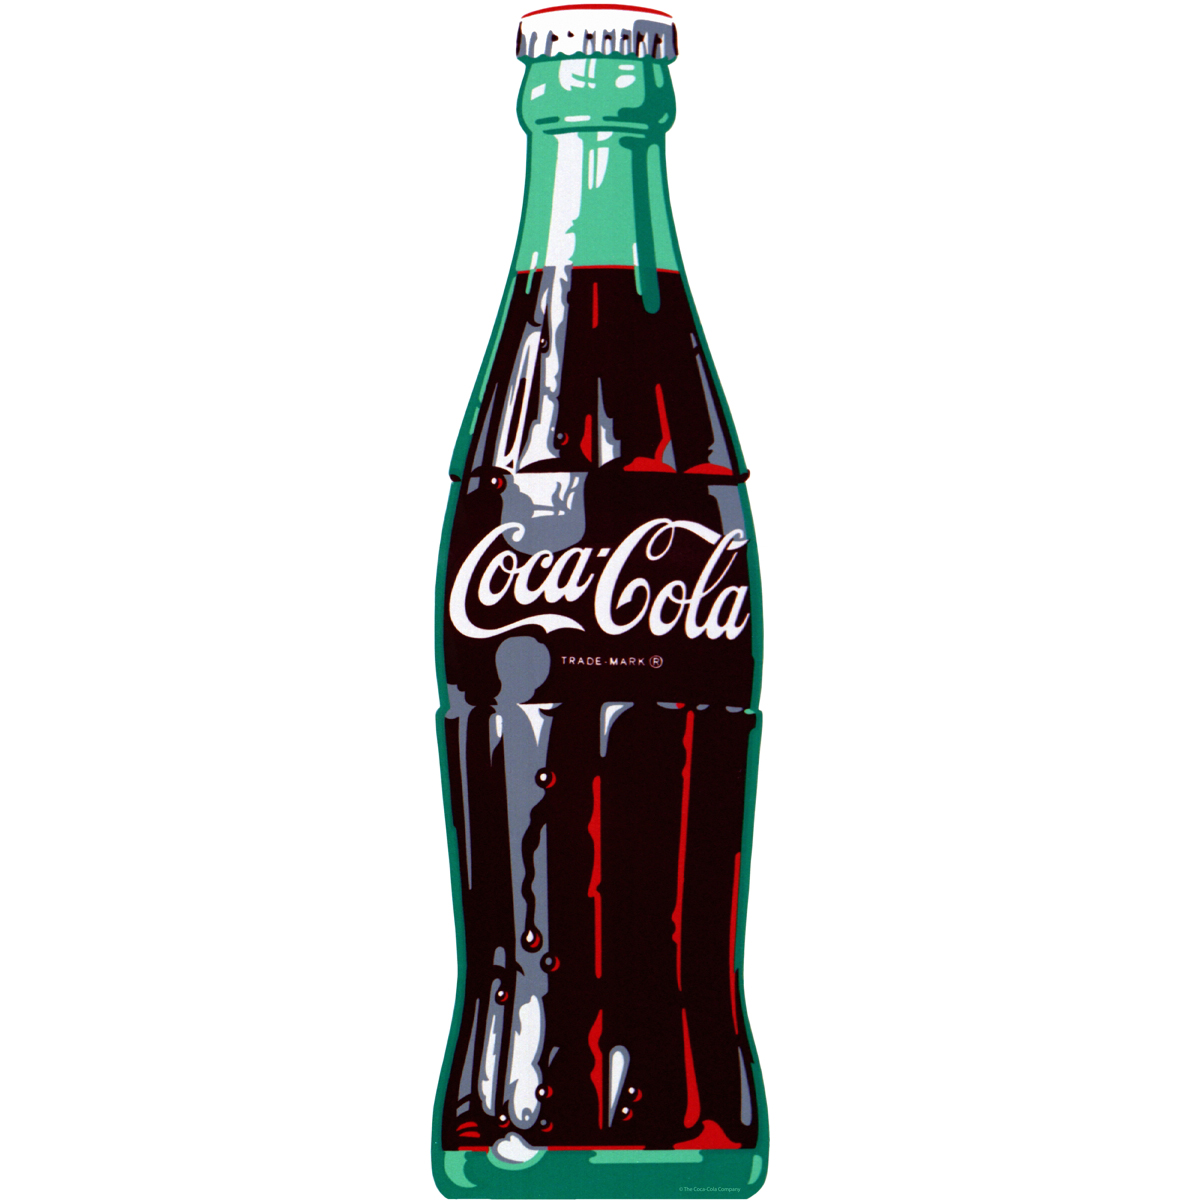 Coca Cola Ice Cold Bottle Floor Graphic 1960s Style At